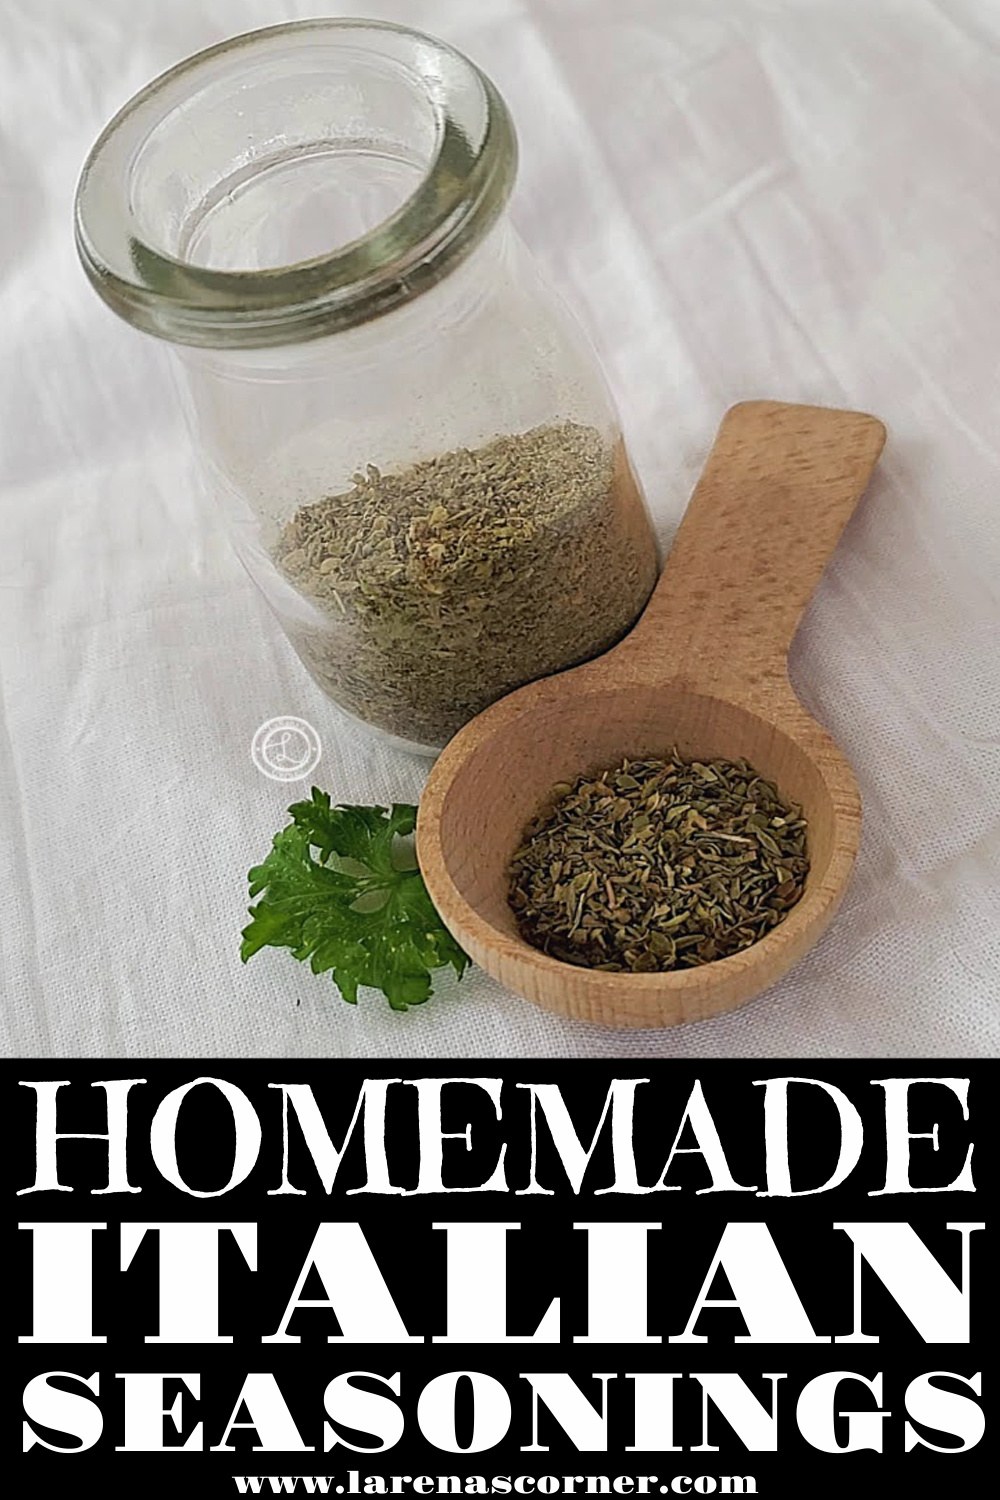 Homemade Italian Seasoning in a small clear container with a wooden spoon full of spice.